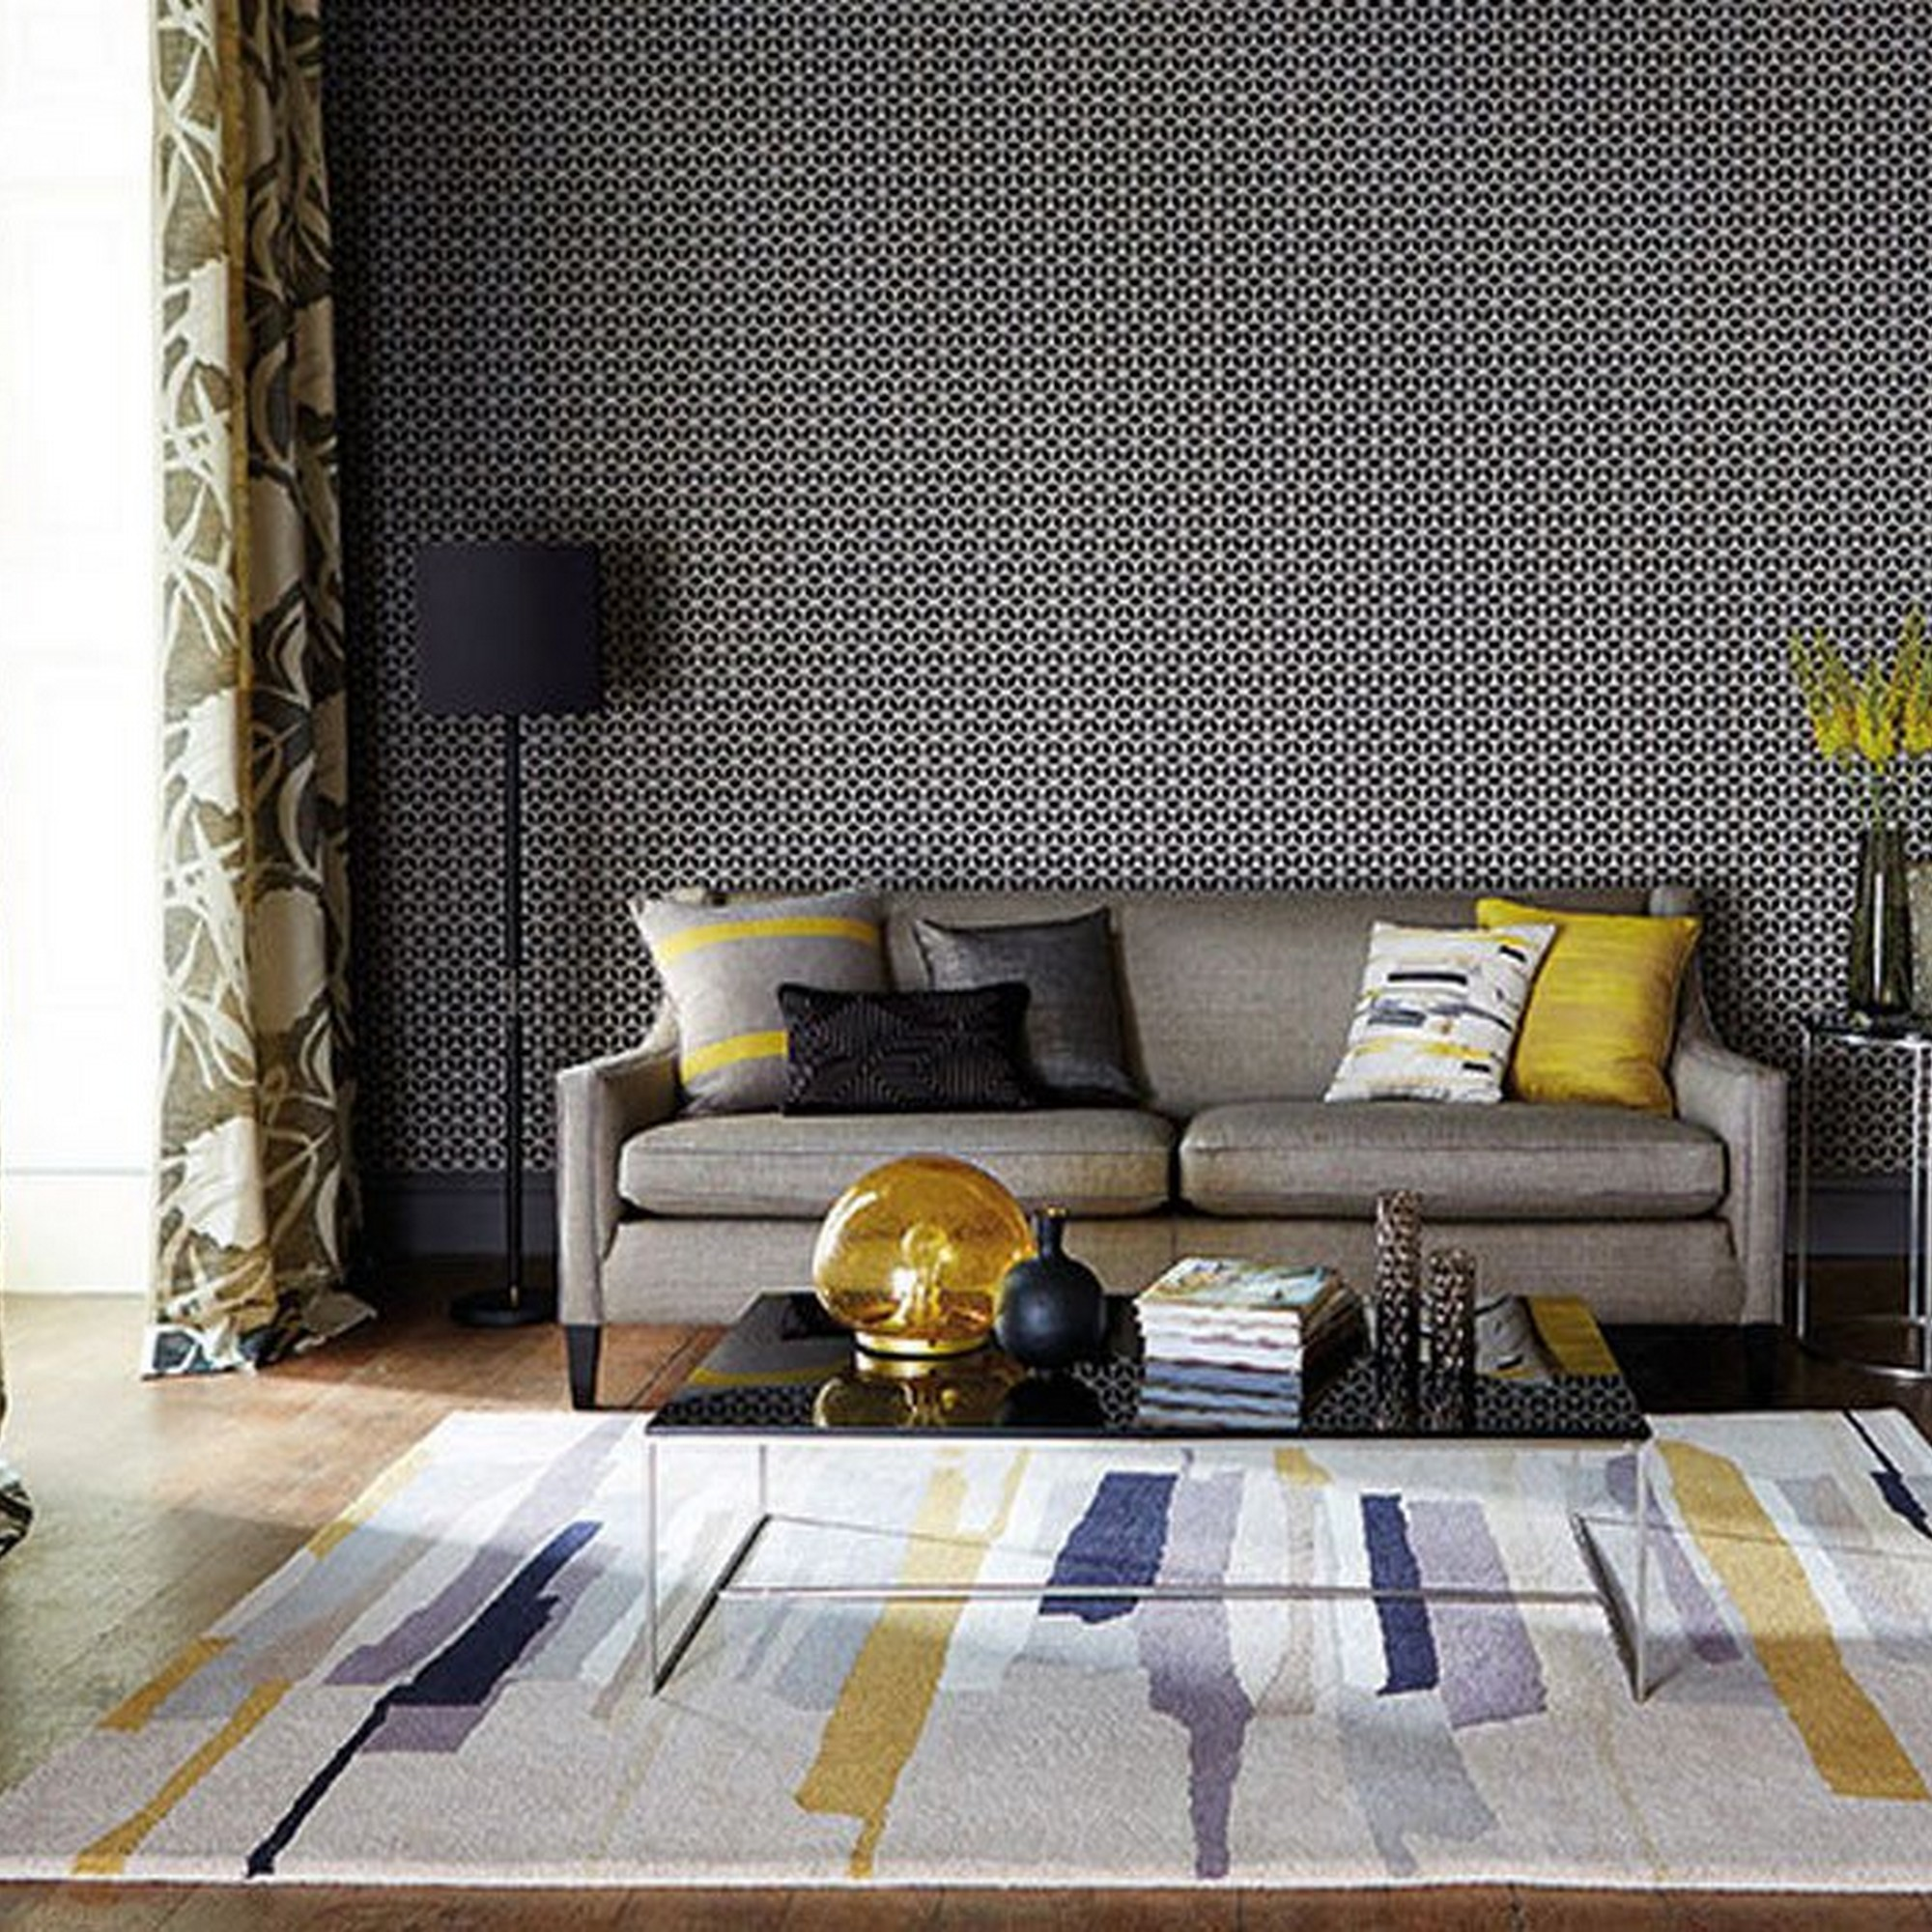 A Saffron And Grey Printed Living Room Rug Next To Sofa With Accented Coloured